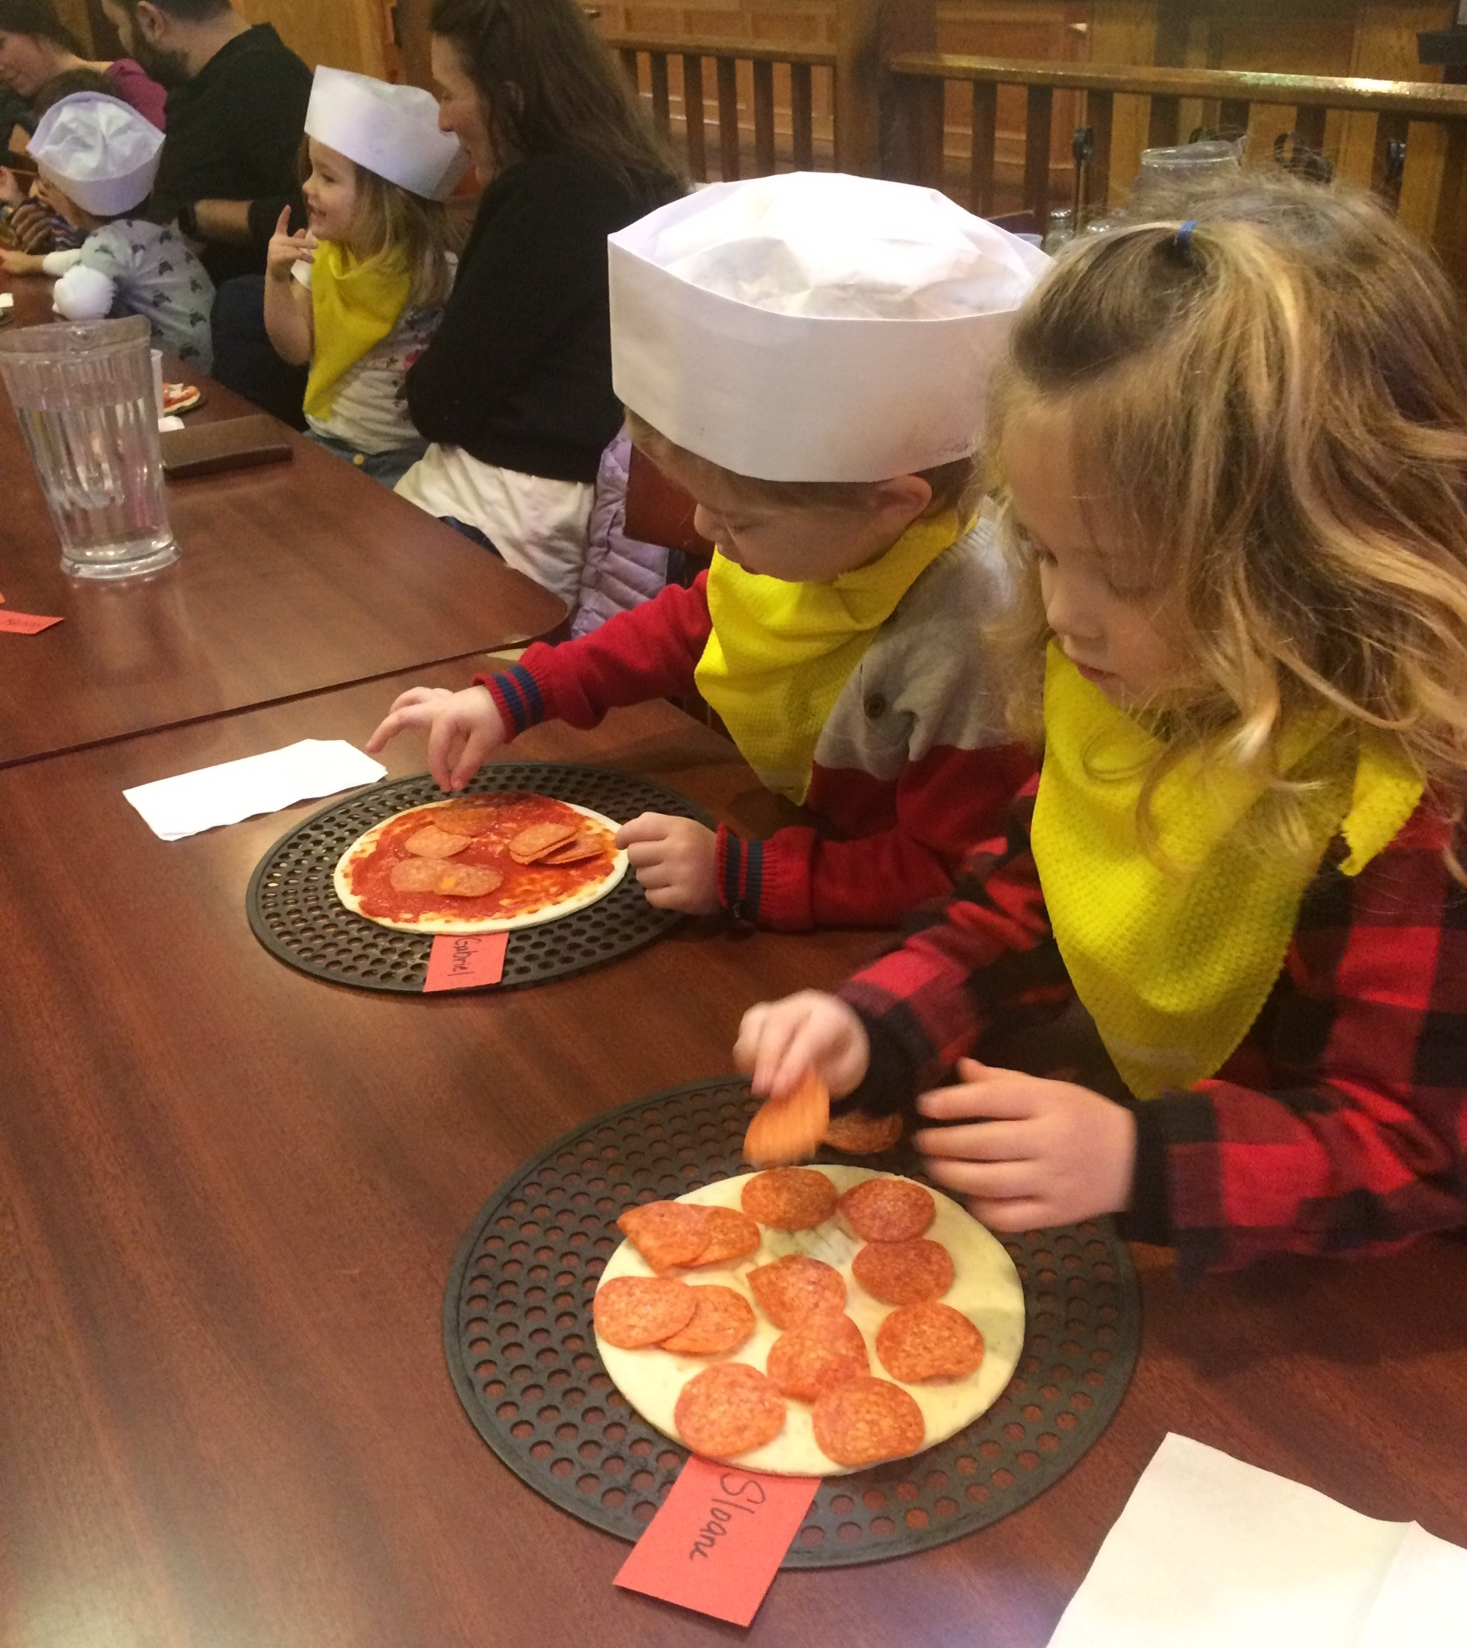 Pizza Field Trip - One of our fondest Sleepy Hollow Preschool traditions is our annual pizza field trip.  In February, our Threes and Fours classes venture to a local pizza restaurant, where they are able to make their very own pizza, and watch it being baked!  Students then get to enjoy their pizza with teachers, parents and friends!